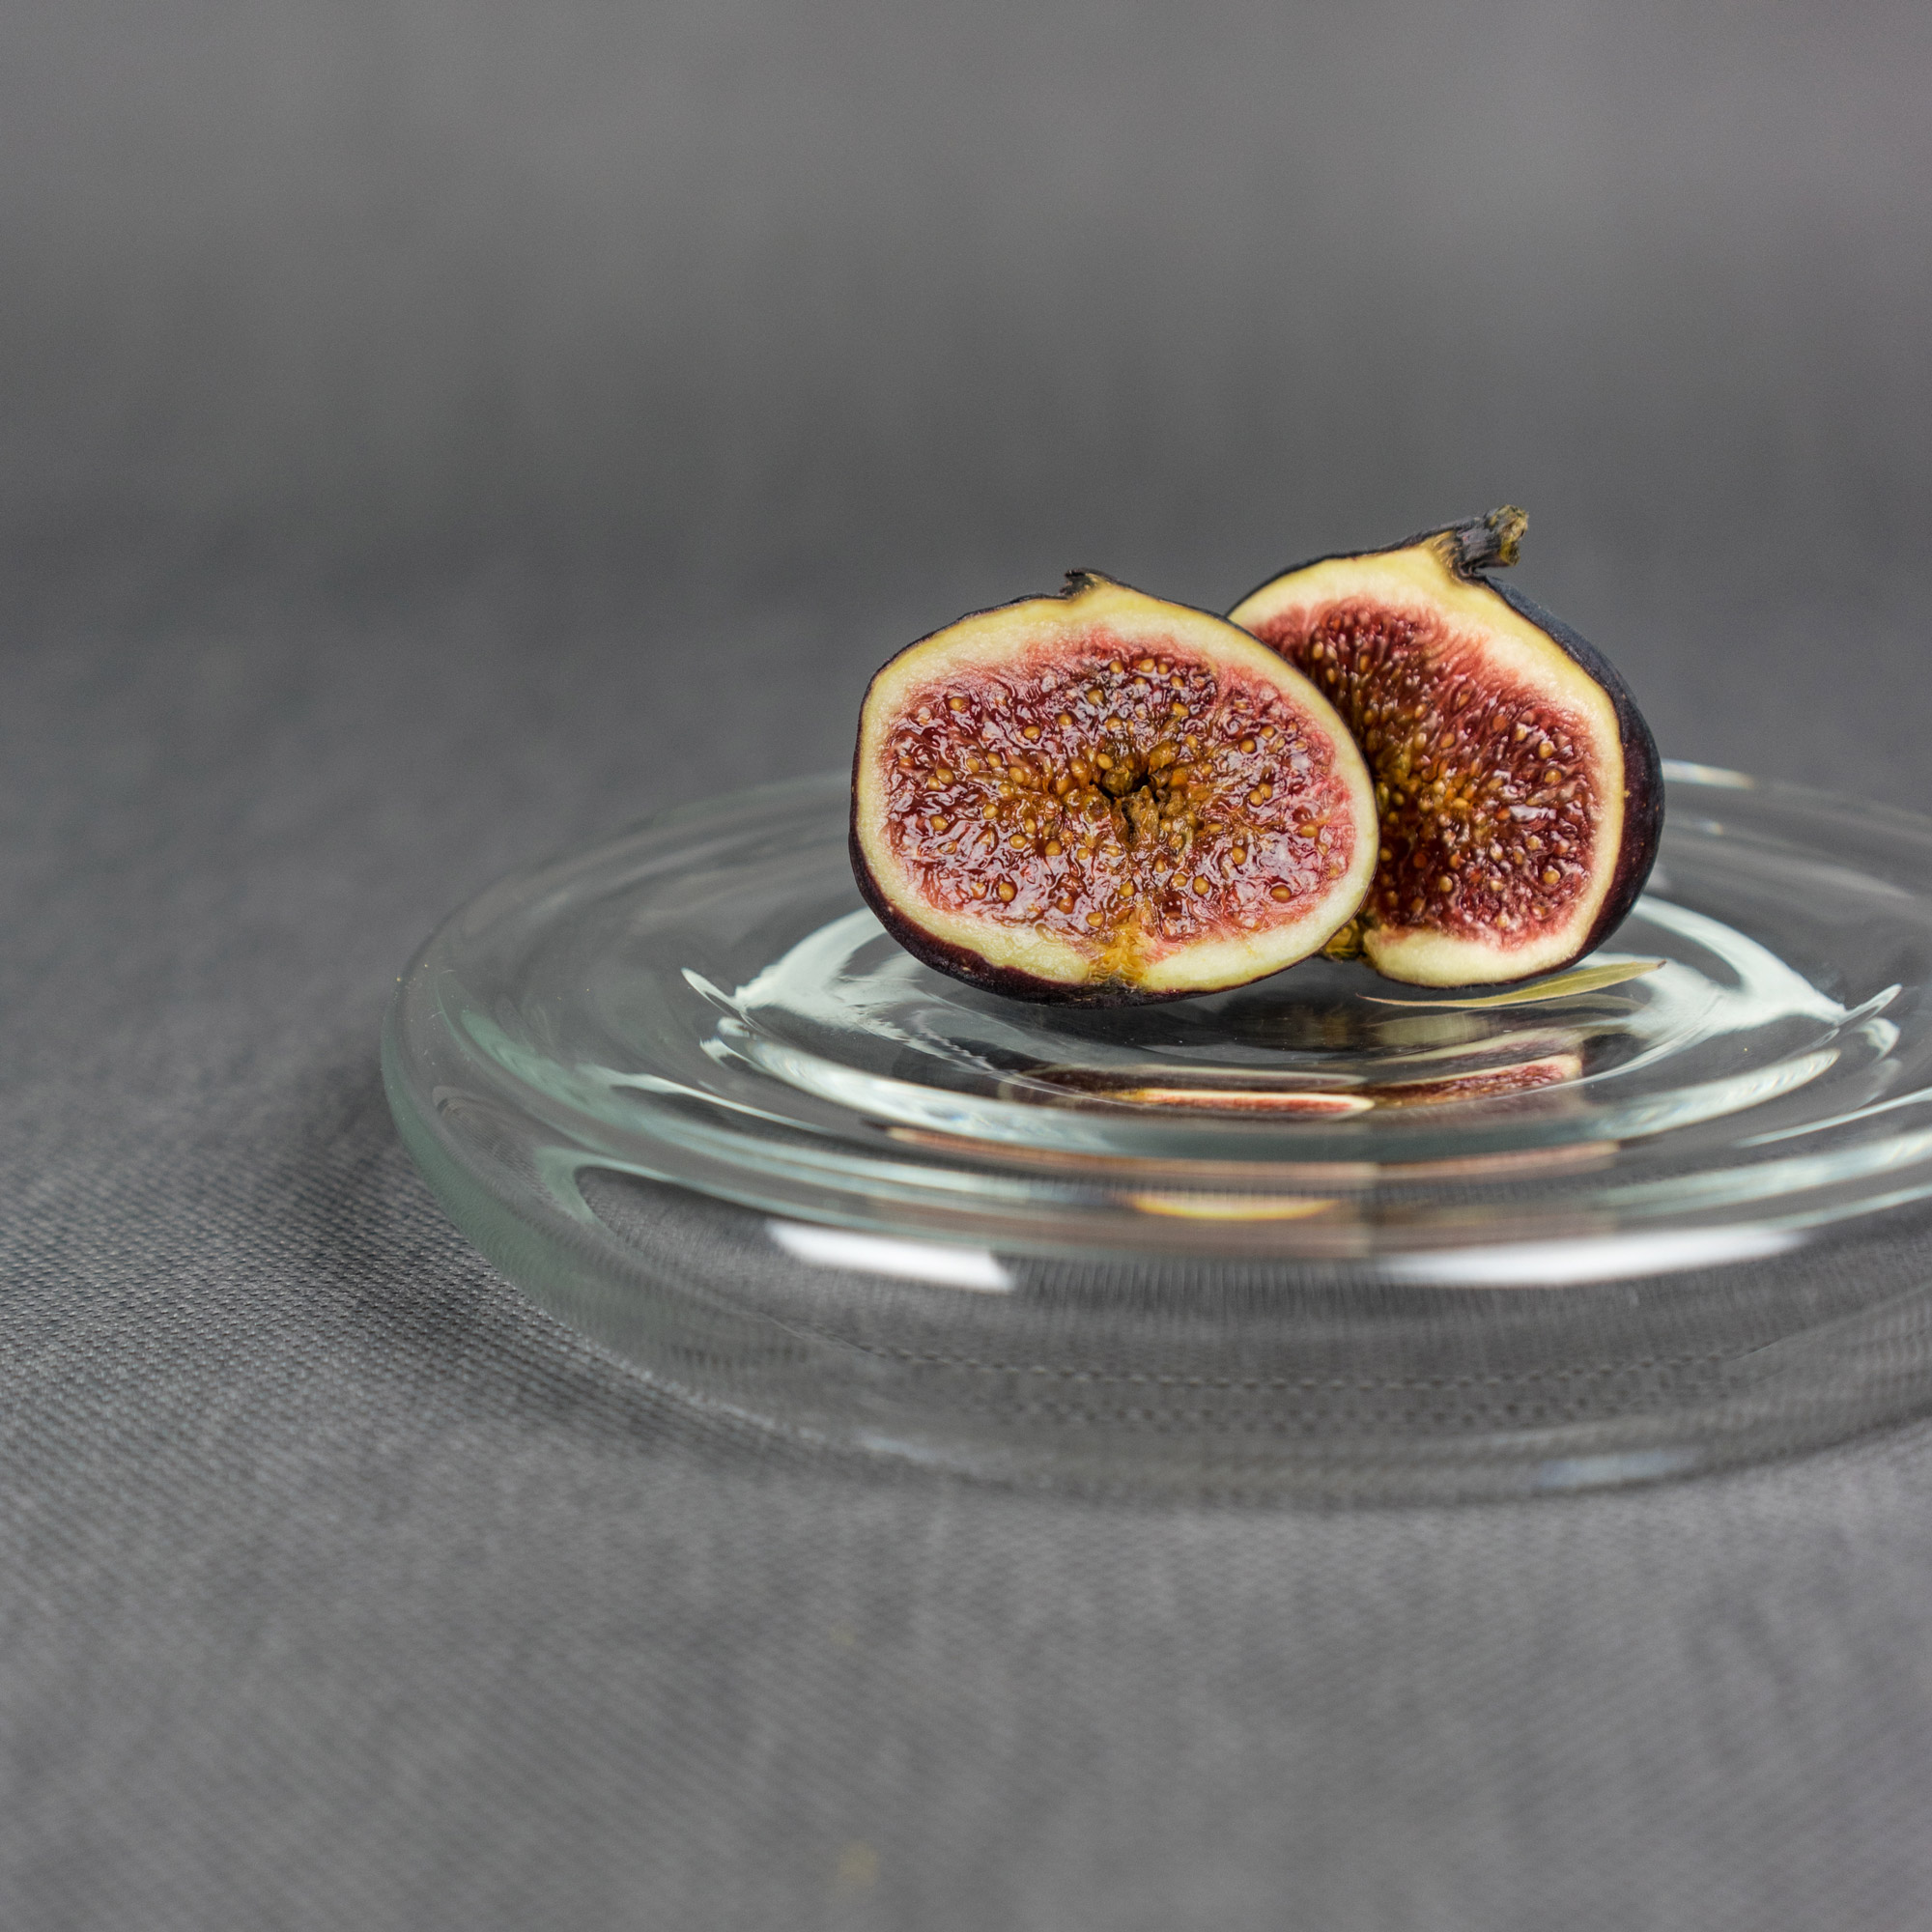 Figs on clear glass serving tray by Michal Prazsky